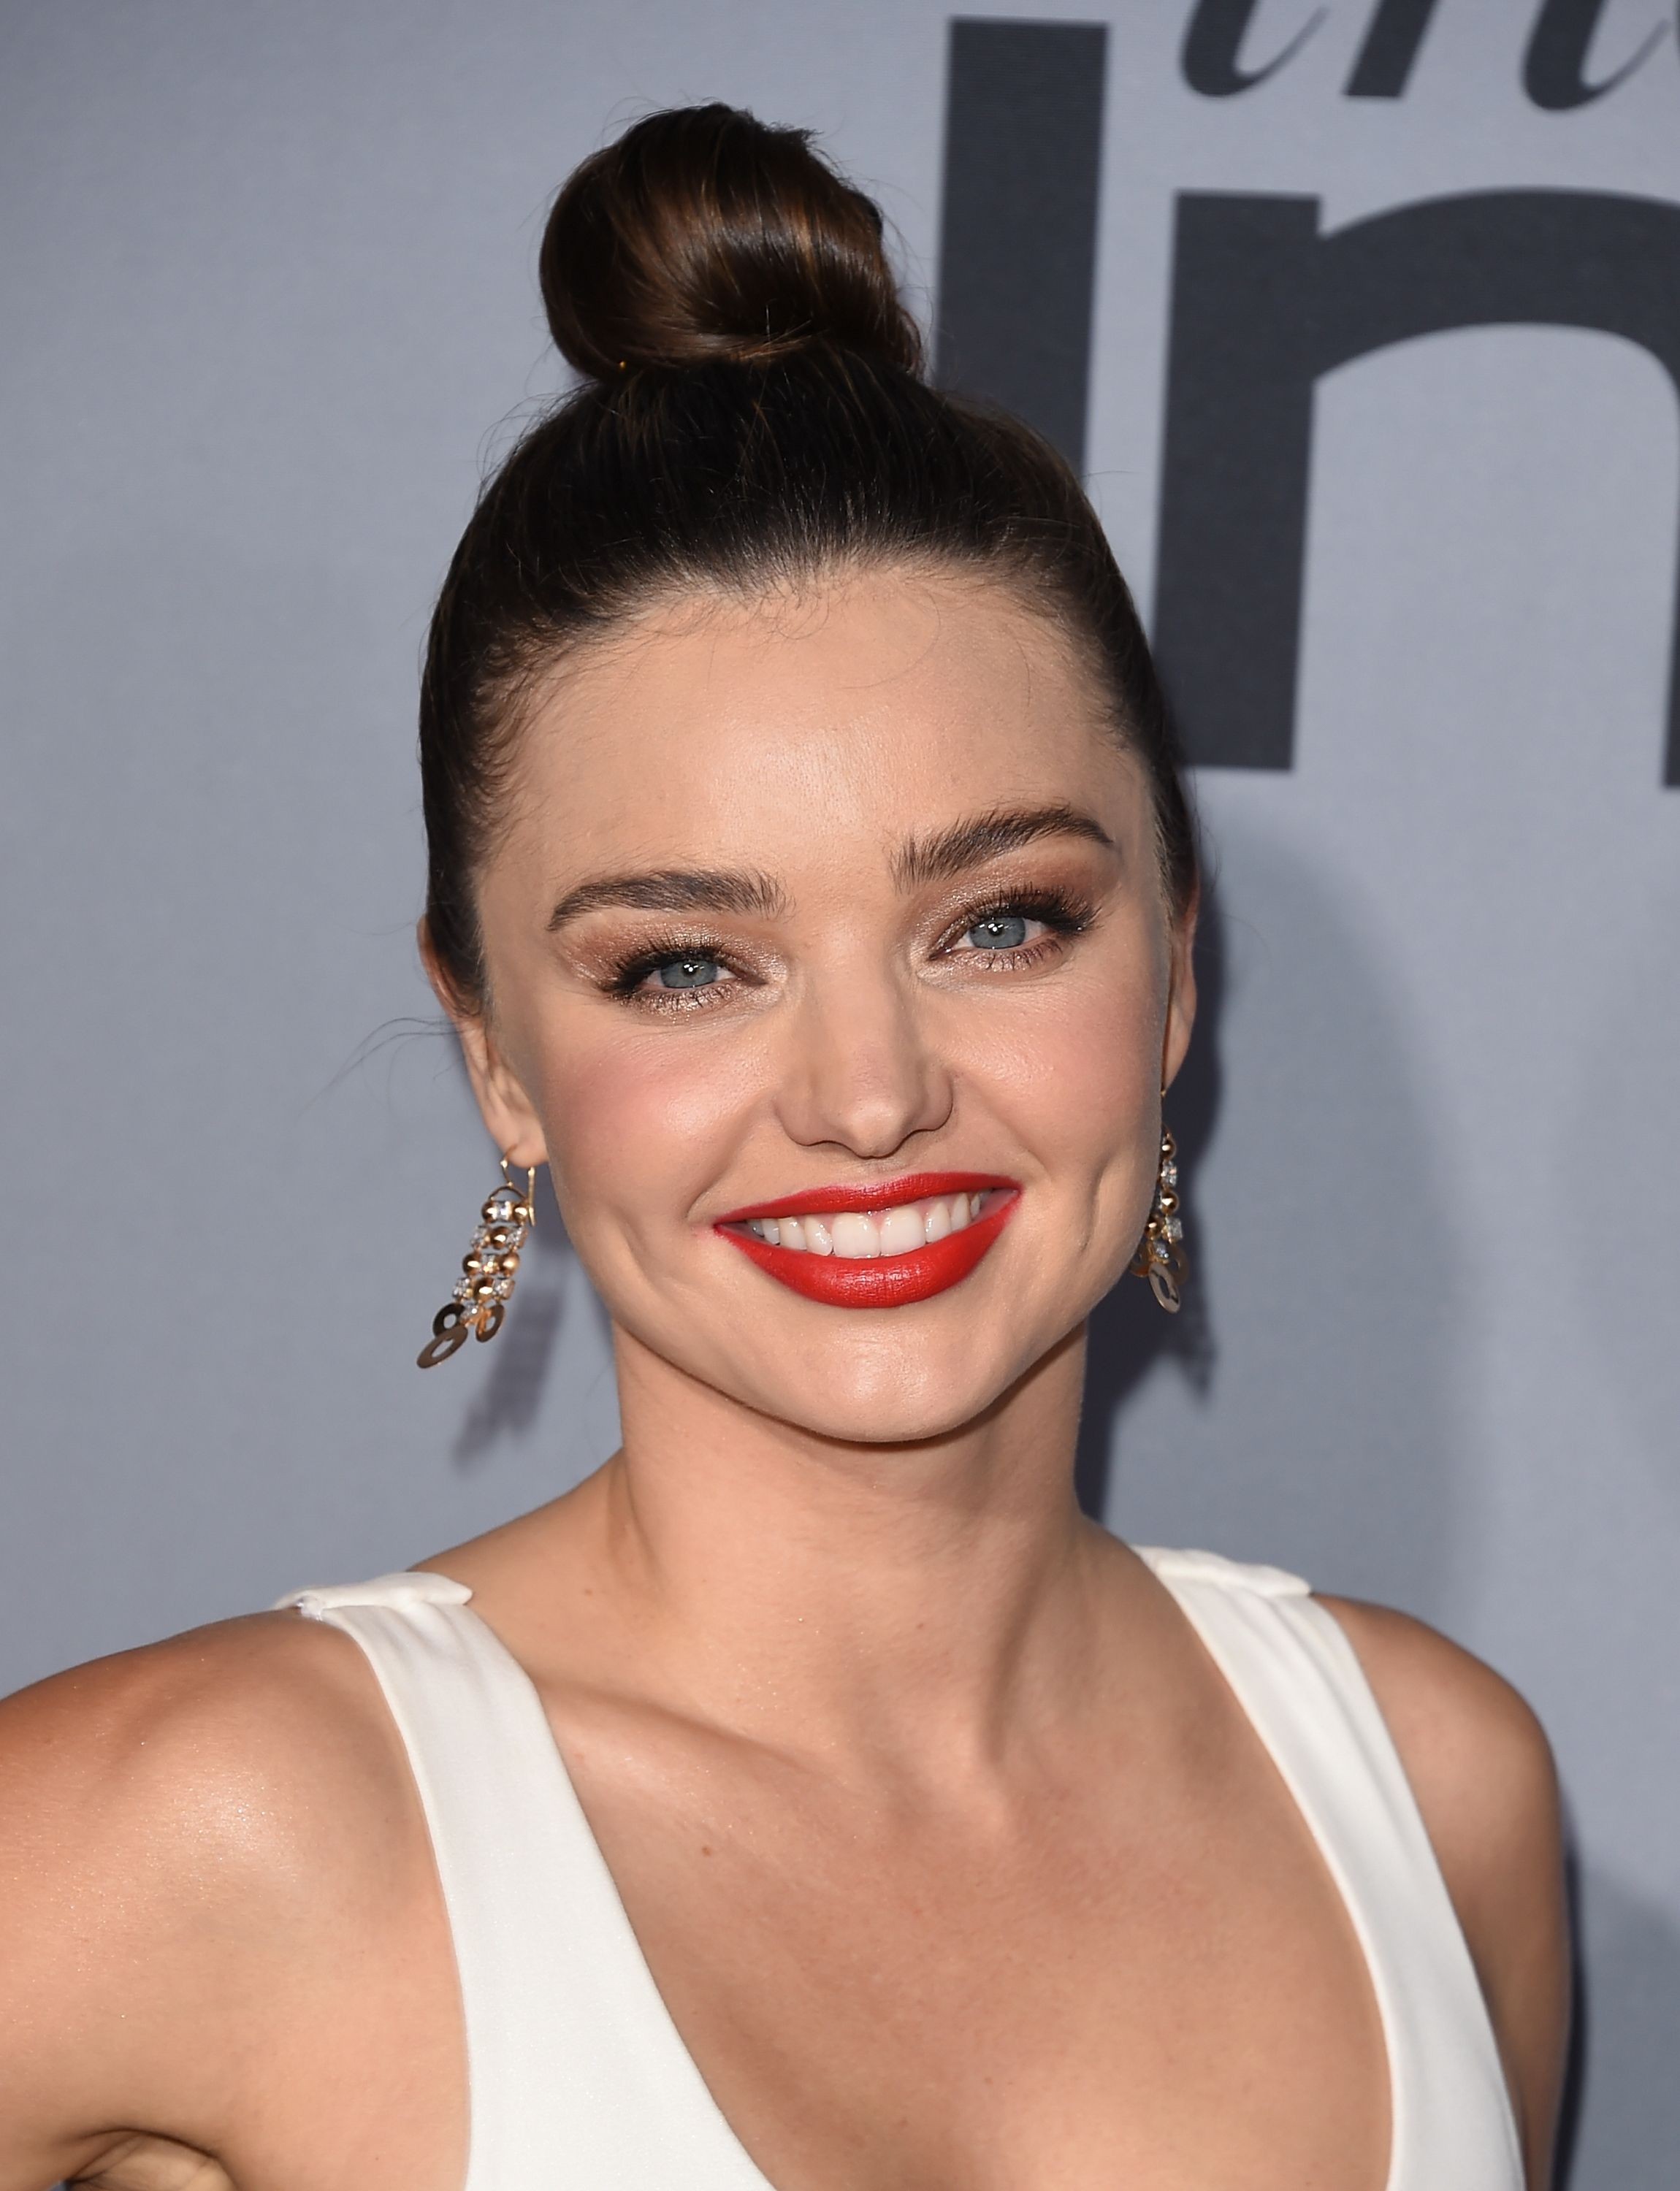 50 Best Top Knot Hairstyles Of 2017 Celebrity Top Knot Ideas